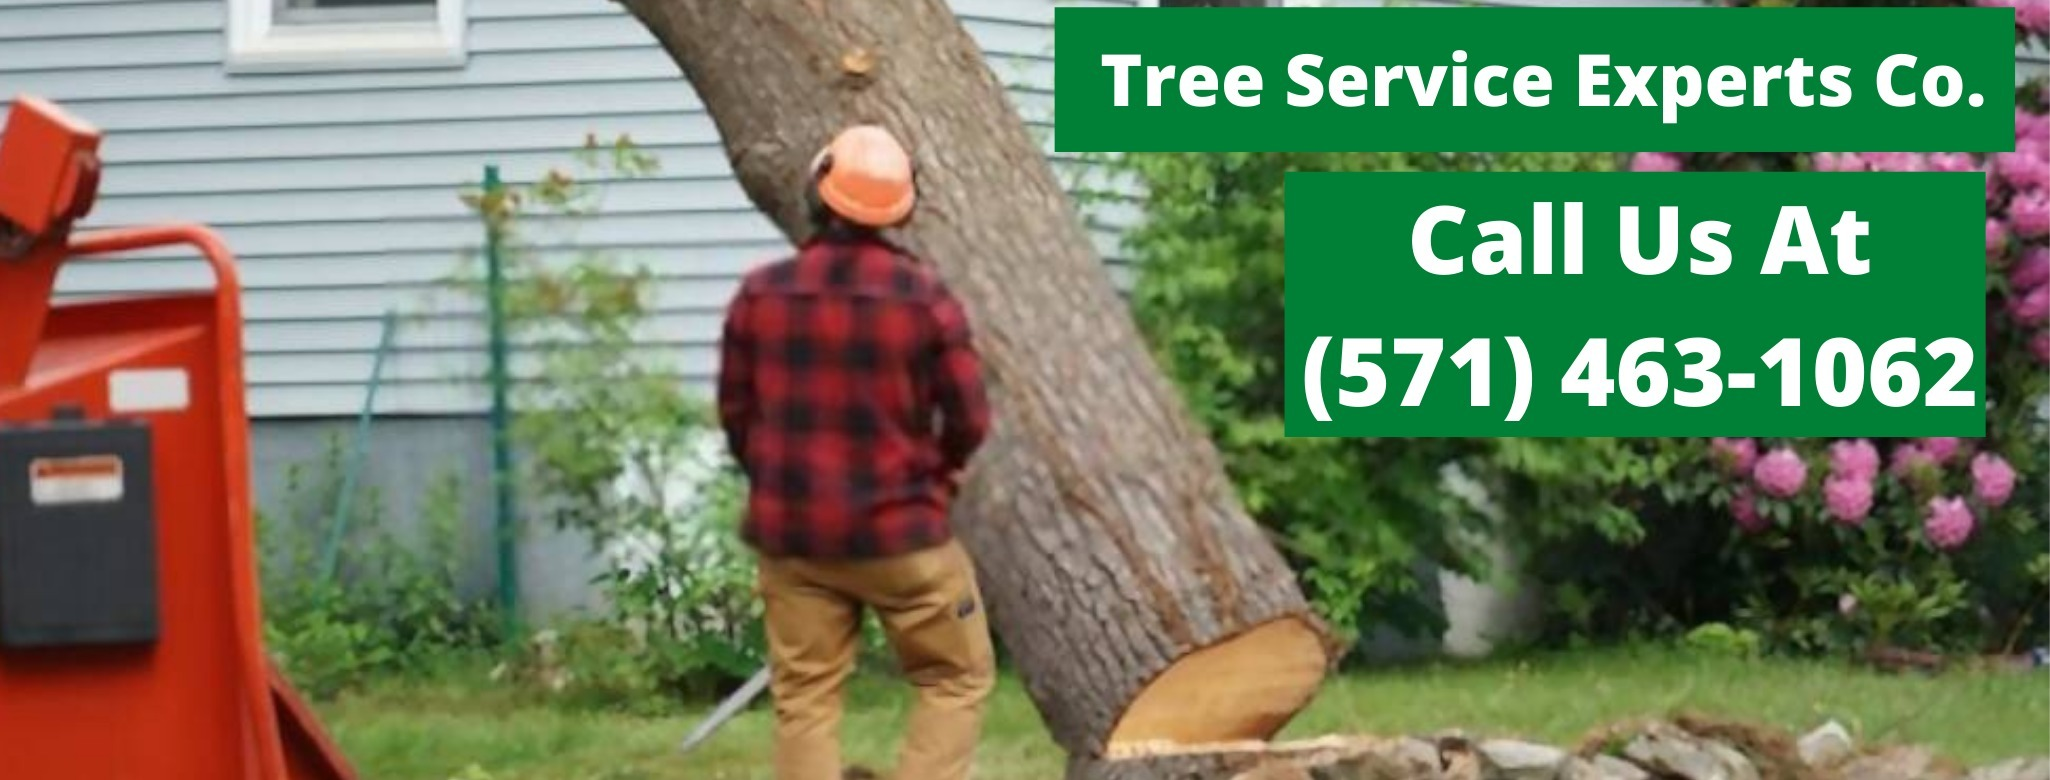 Tree Service Experts Co. (@treeserviceexpertsco) Cover Image